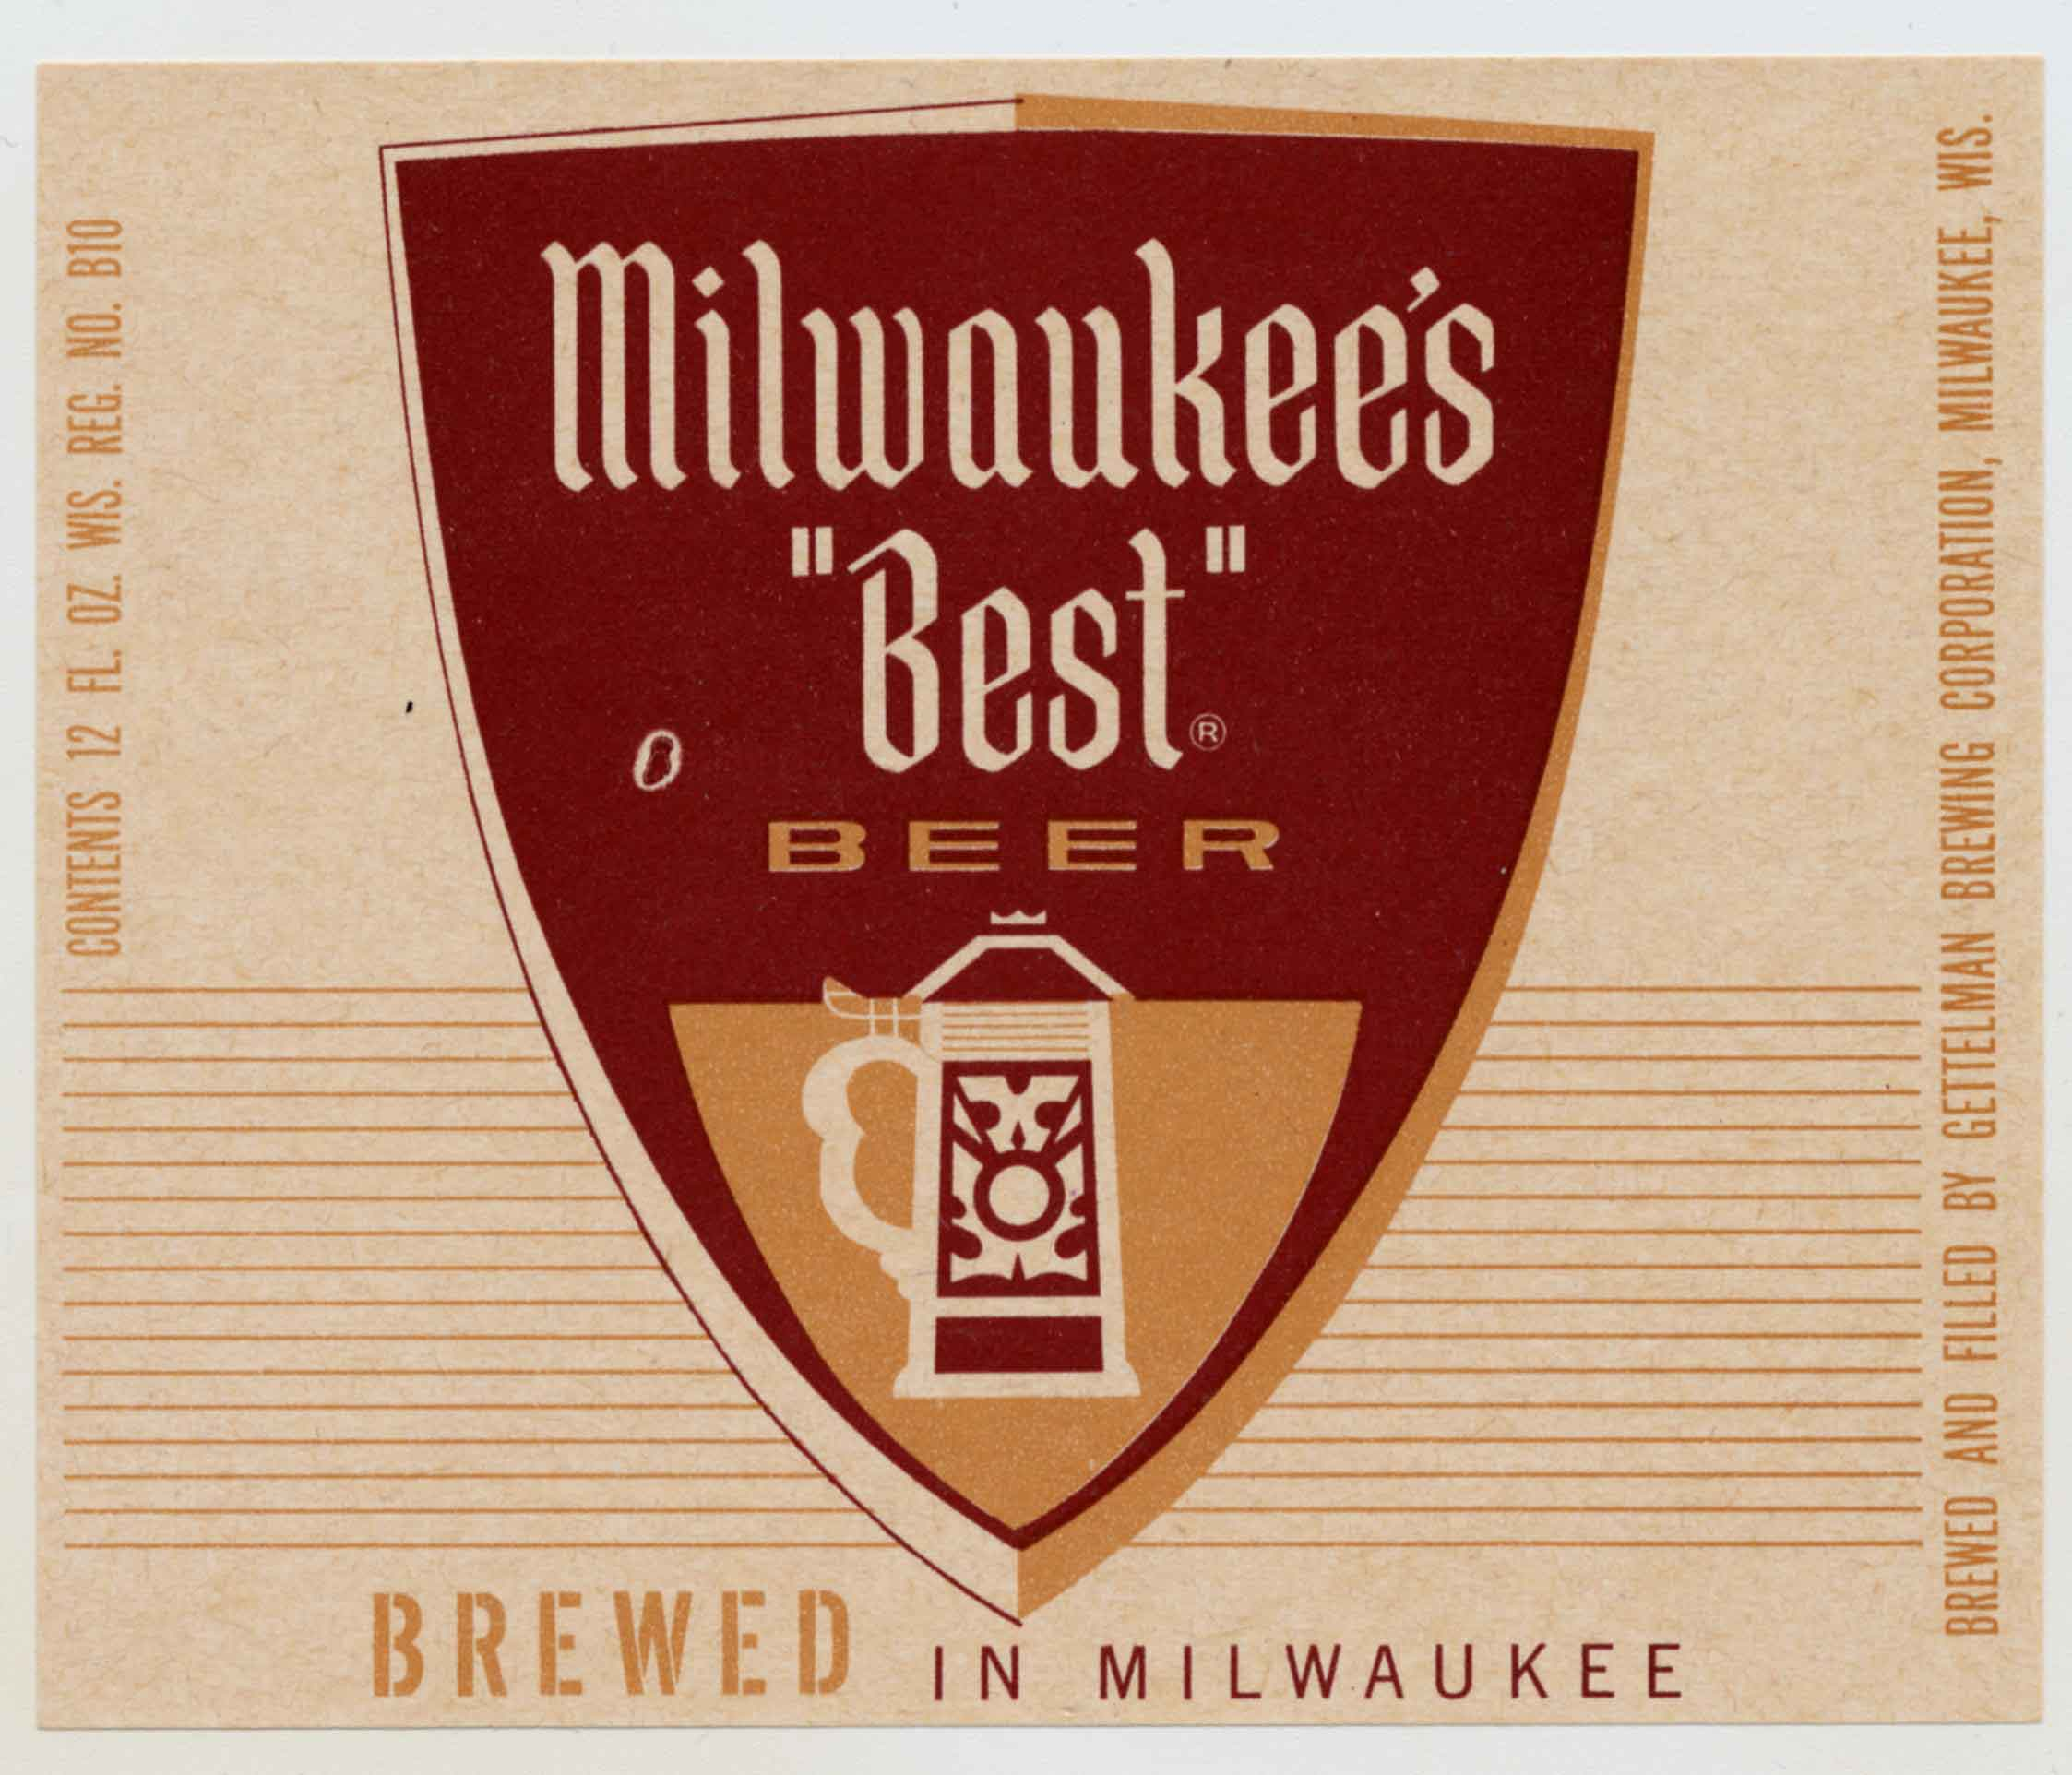 Milwaukee's Best beer label